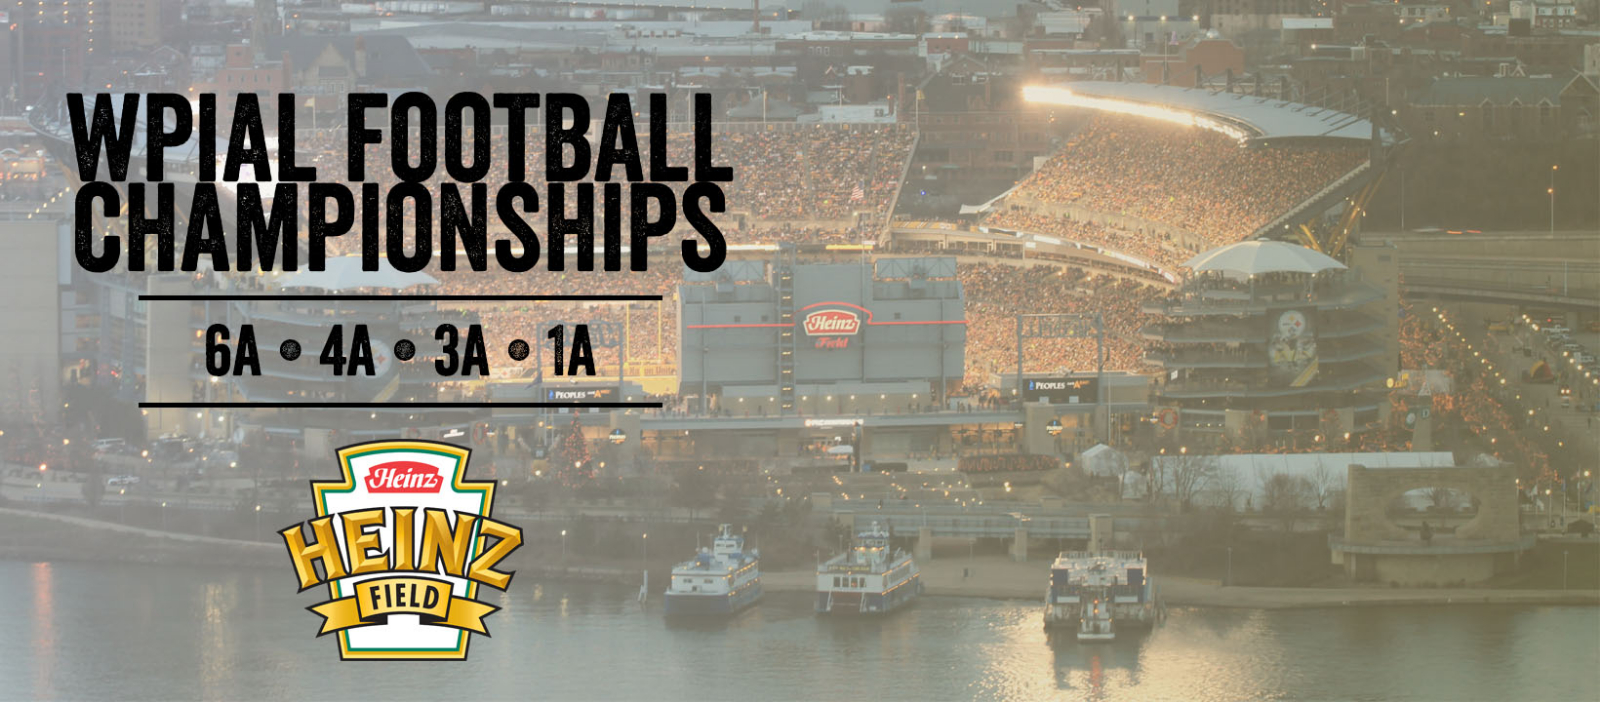 W.P.I.A.L. Championship Tickets ON SALE